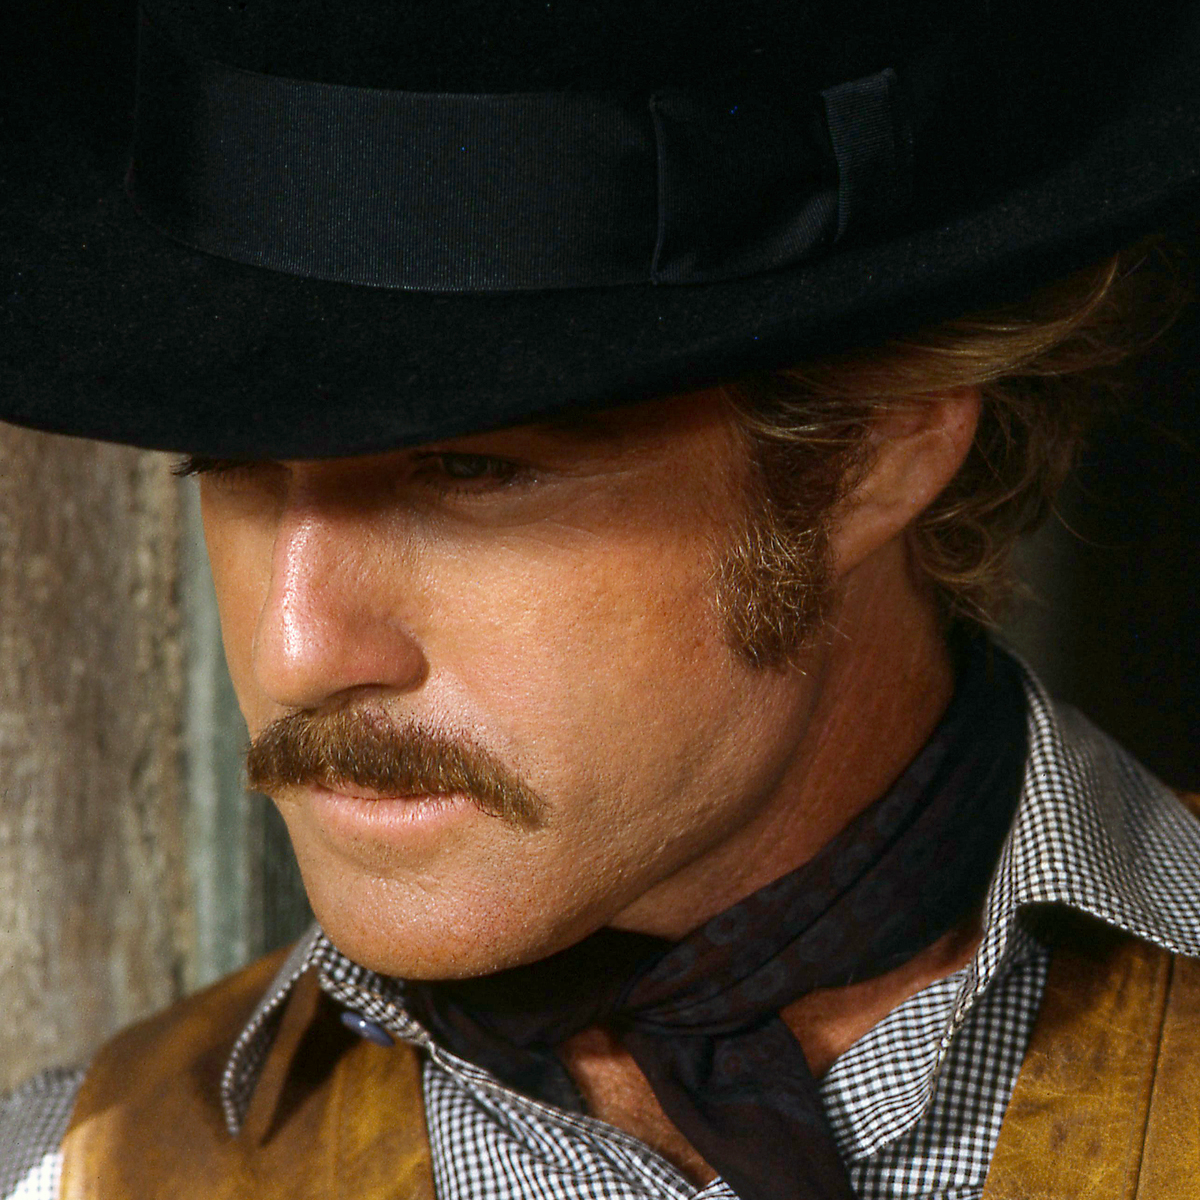 American actor Robert Redford as the Sundance Kid, in 'Butch Cassidy And The Sundance Kid', directed by George Roy Hill, 1969.